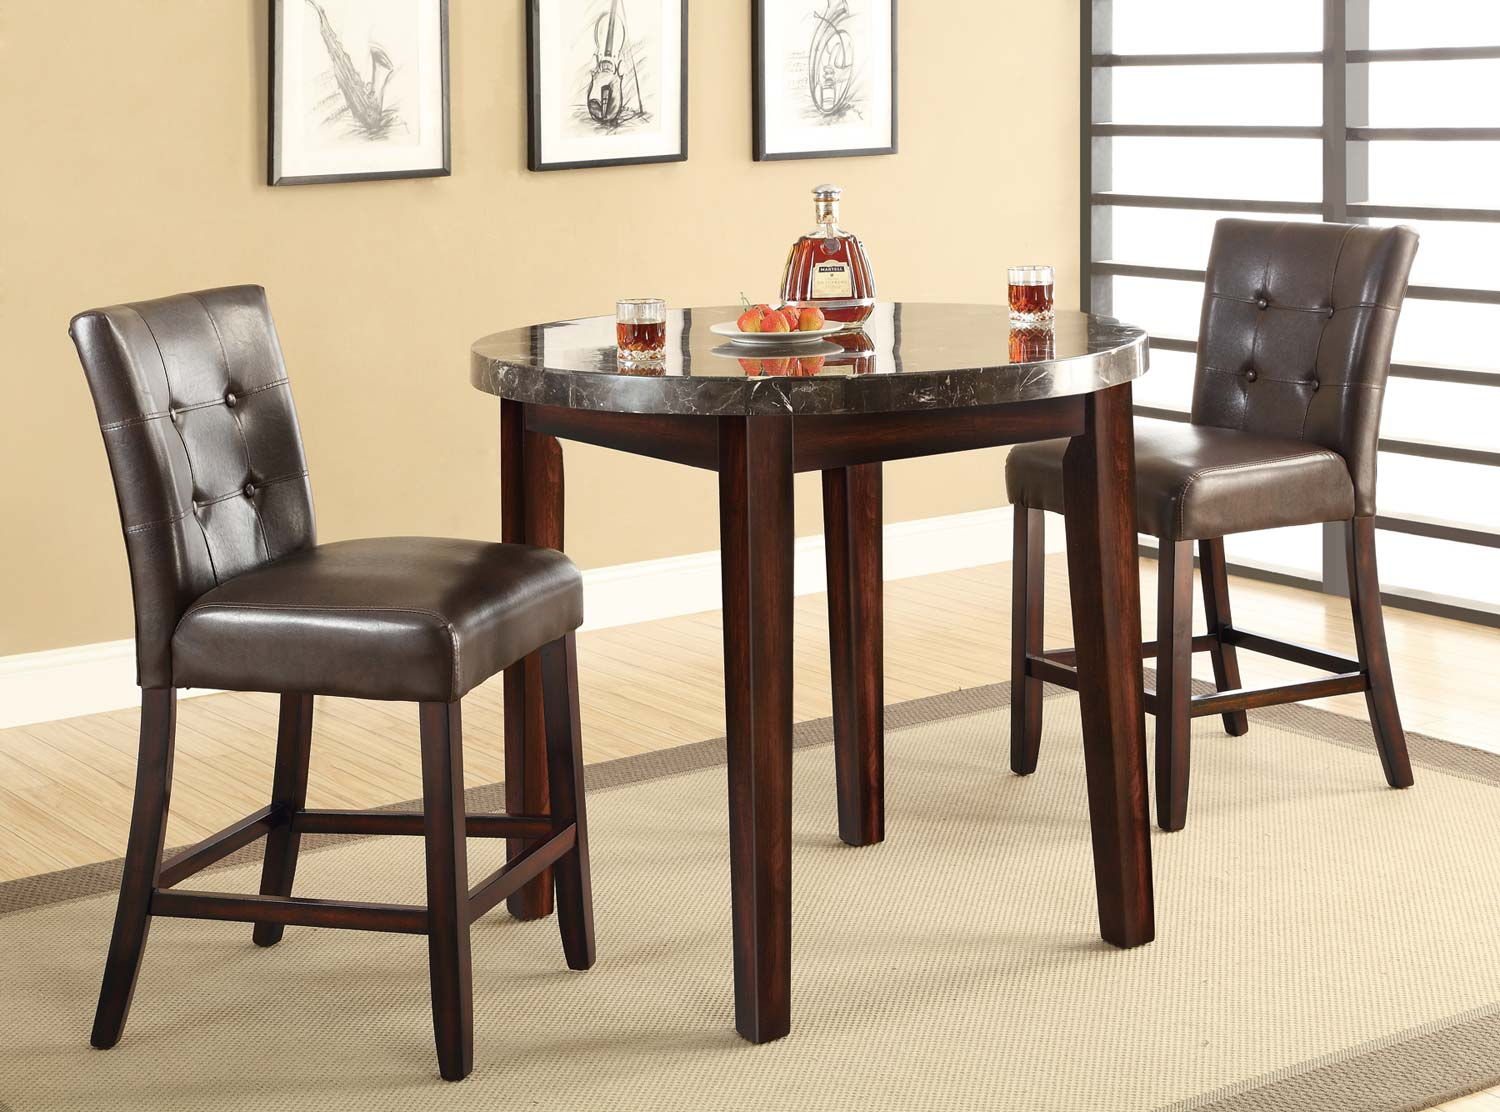 Coaster Milton Round Counter Height Dining Set - Dark Top - Rich Cherry